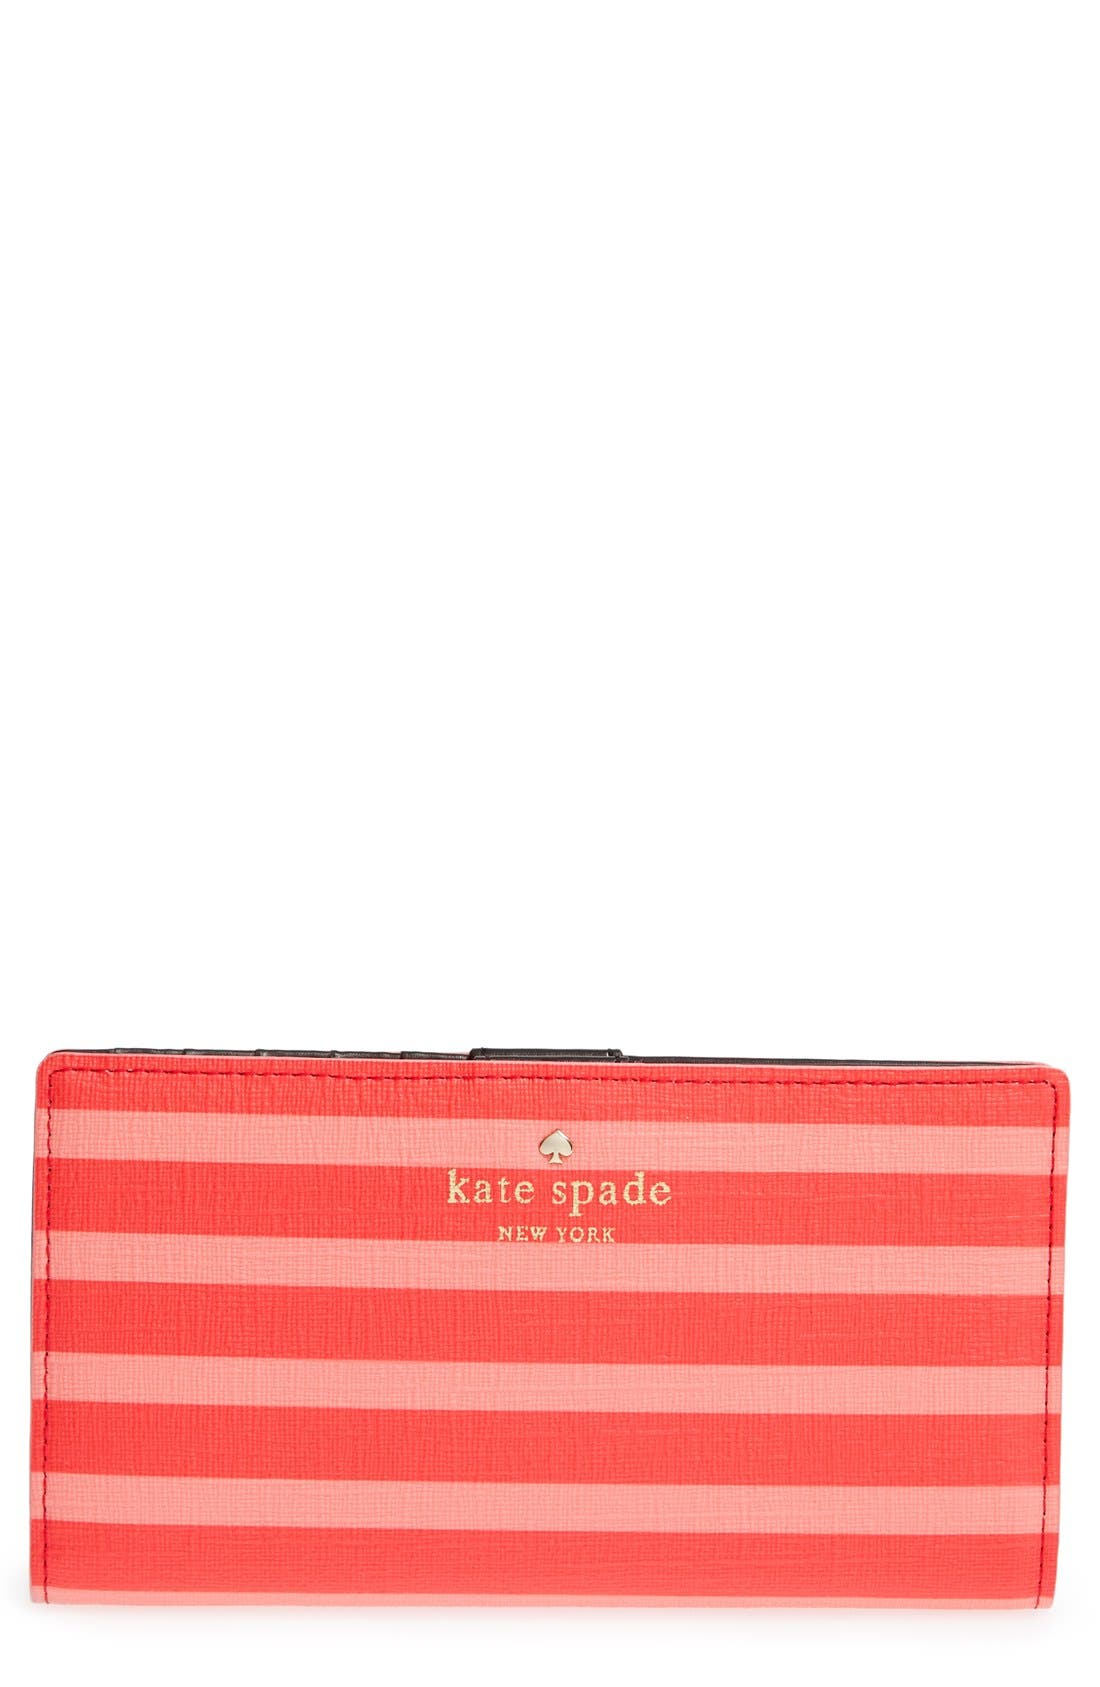 Main Image - kate spade new york 'fairmount square - stacy' coated canvas wallet